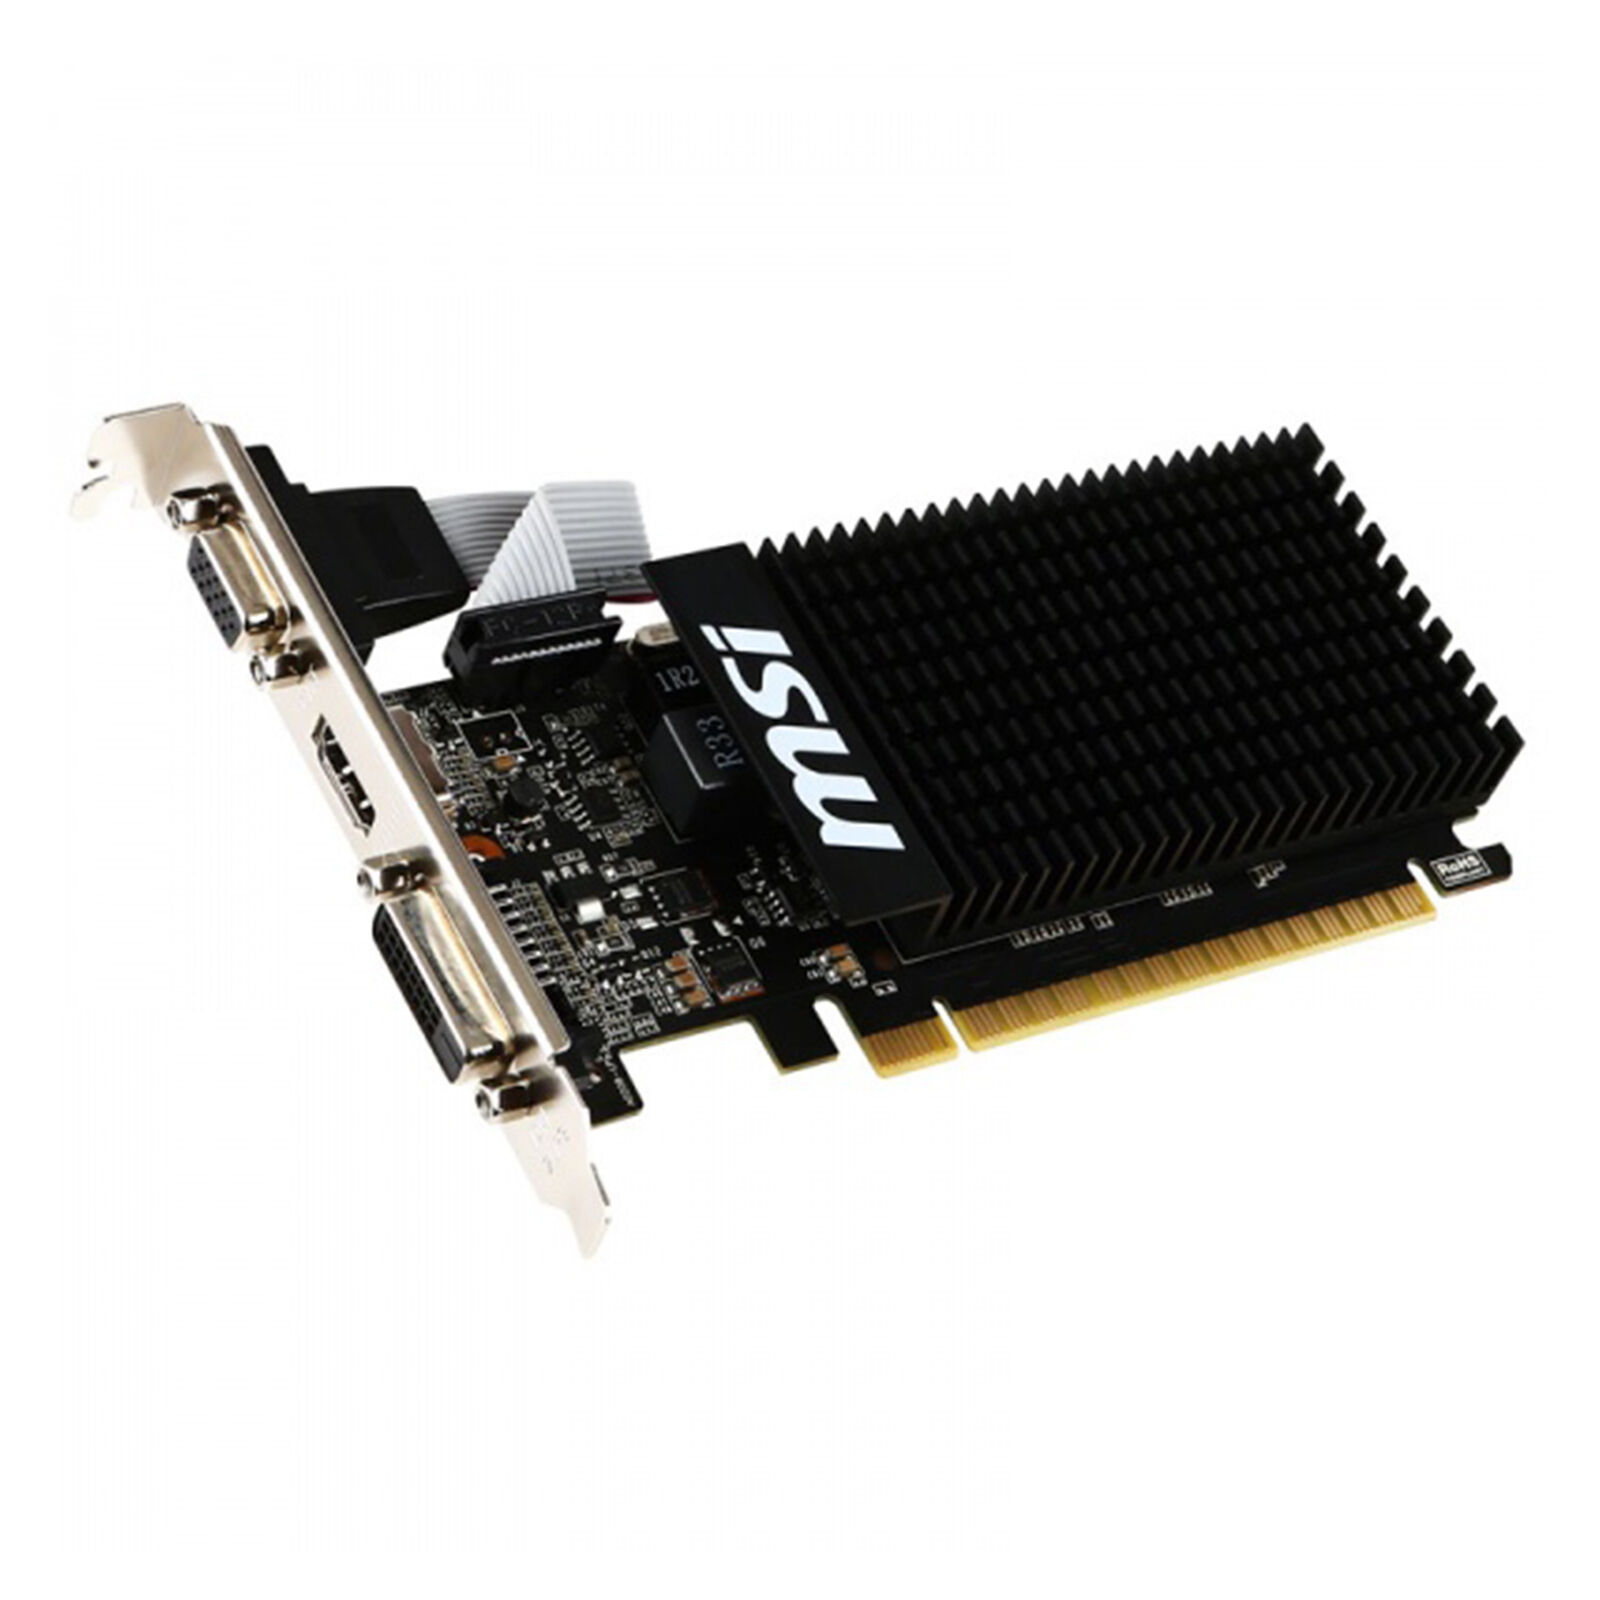 SCHEDA VIDEO GRAFICA MSI NVIDIA GEFORCE GT710 2GB GDDR3 PCI EXPRESS 2.0 LOW PROF